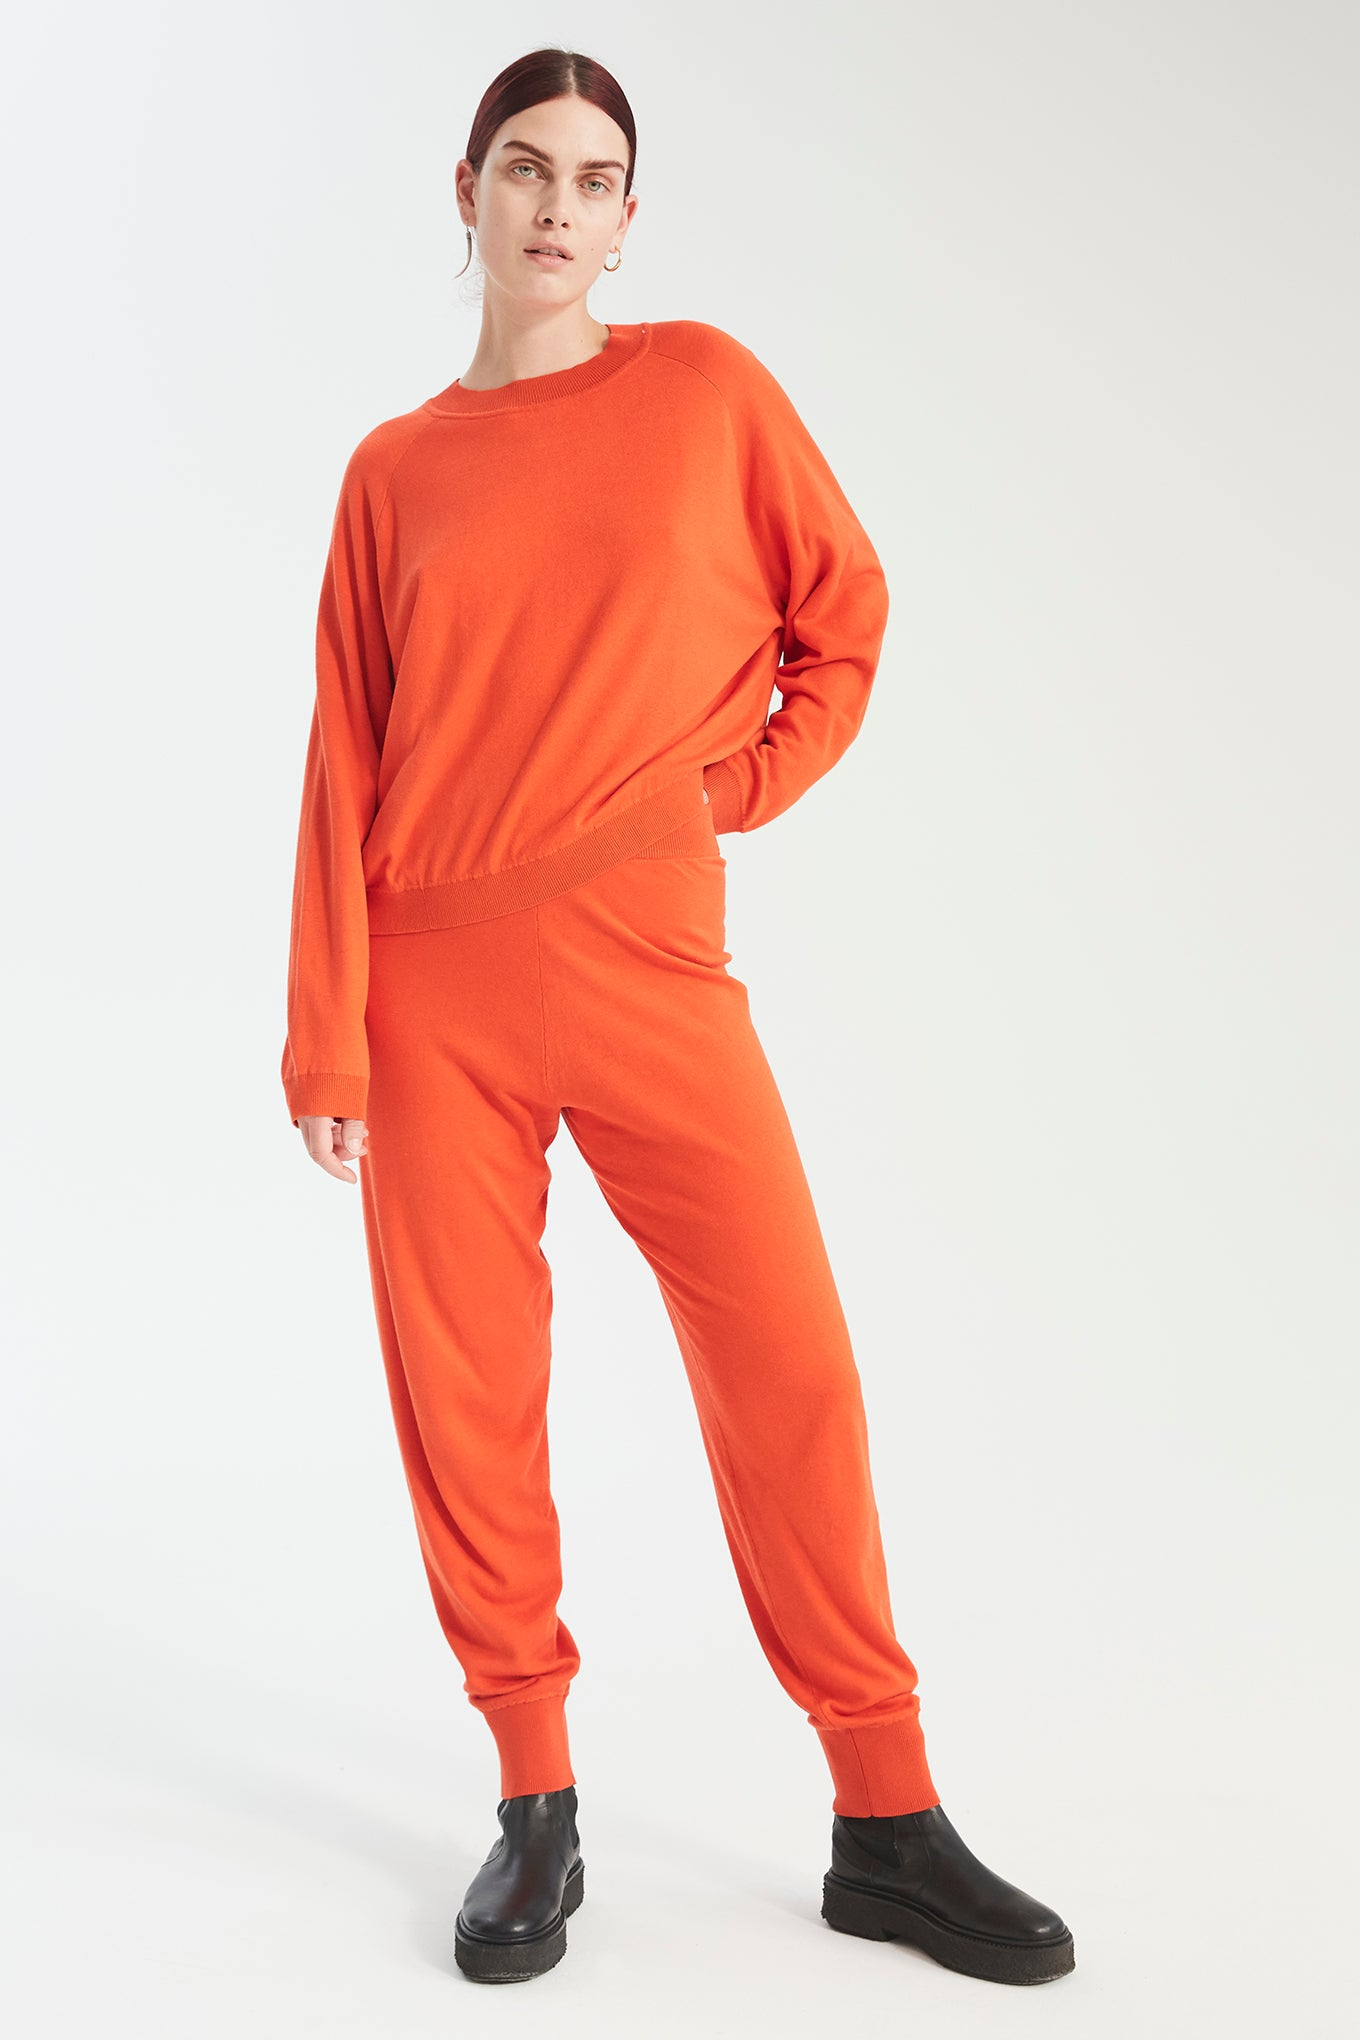 Zana Knit Pants - Bright Orange - Silk/Cotton